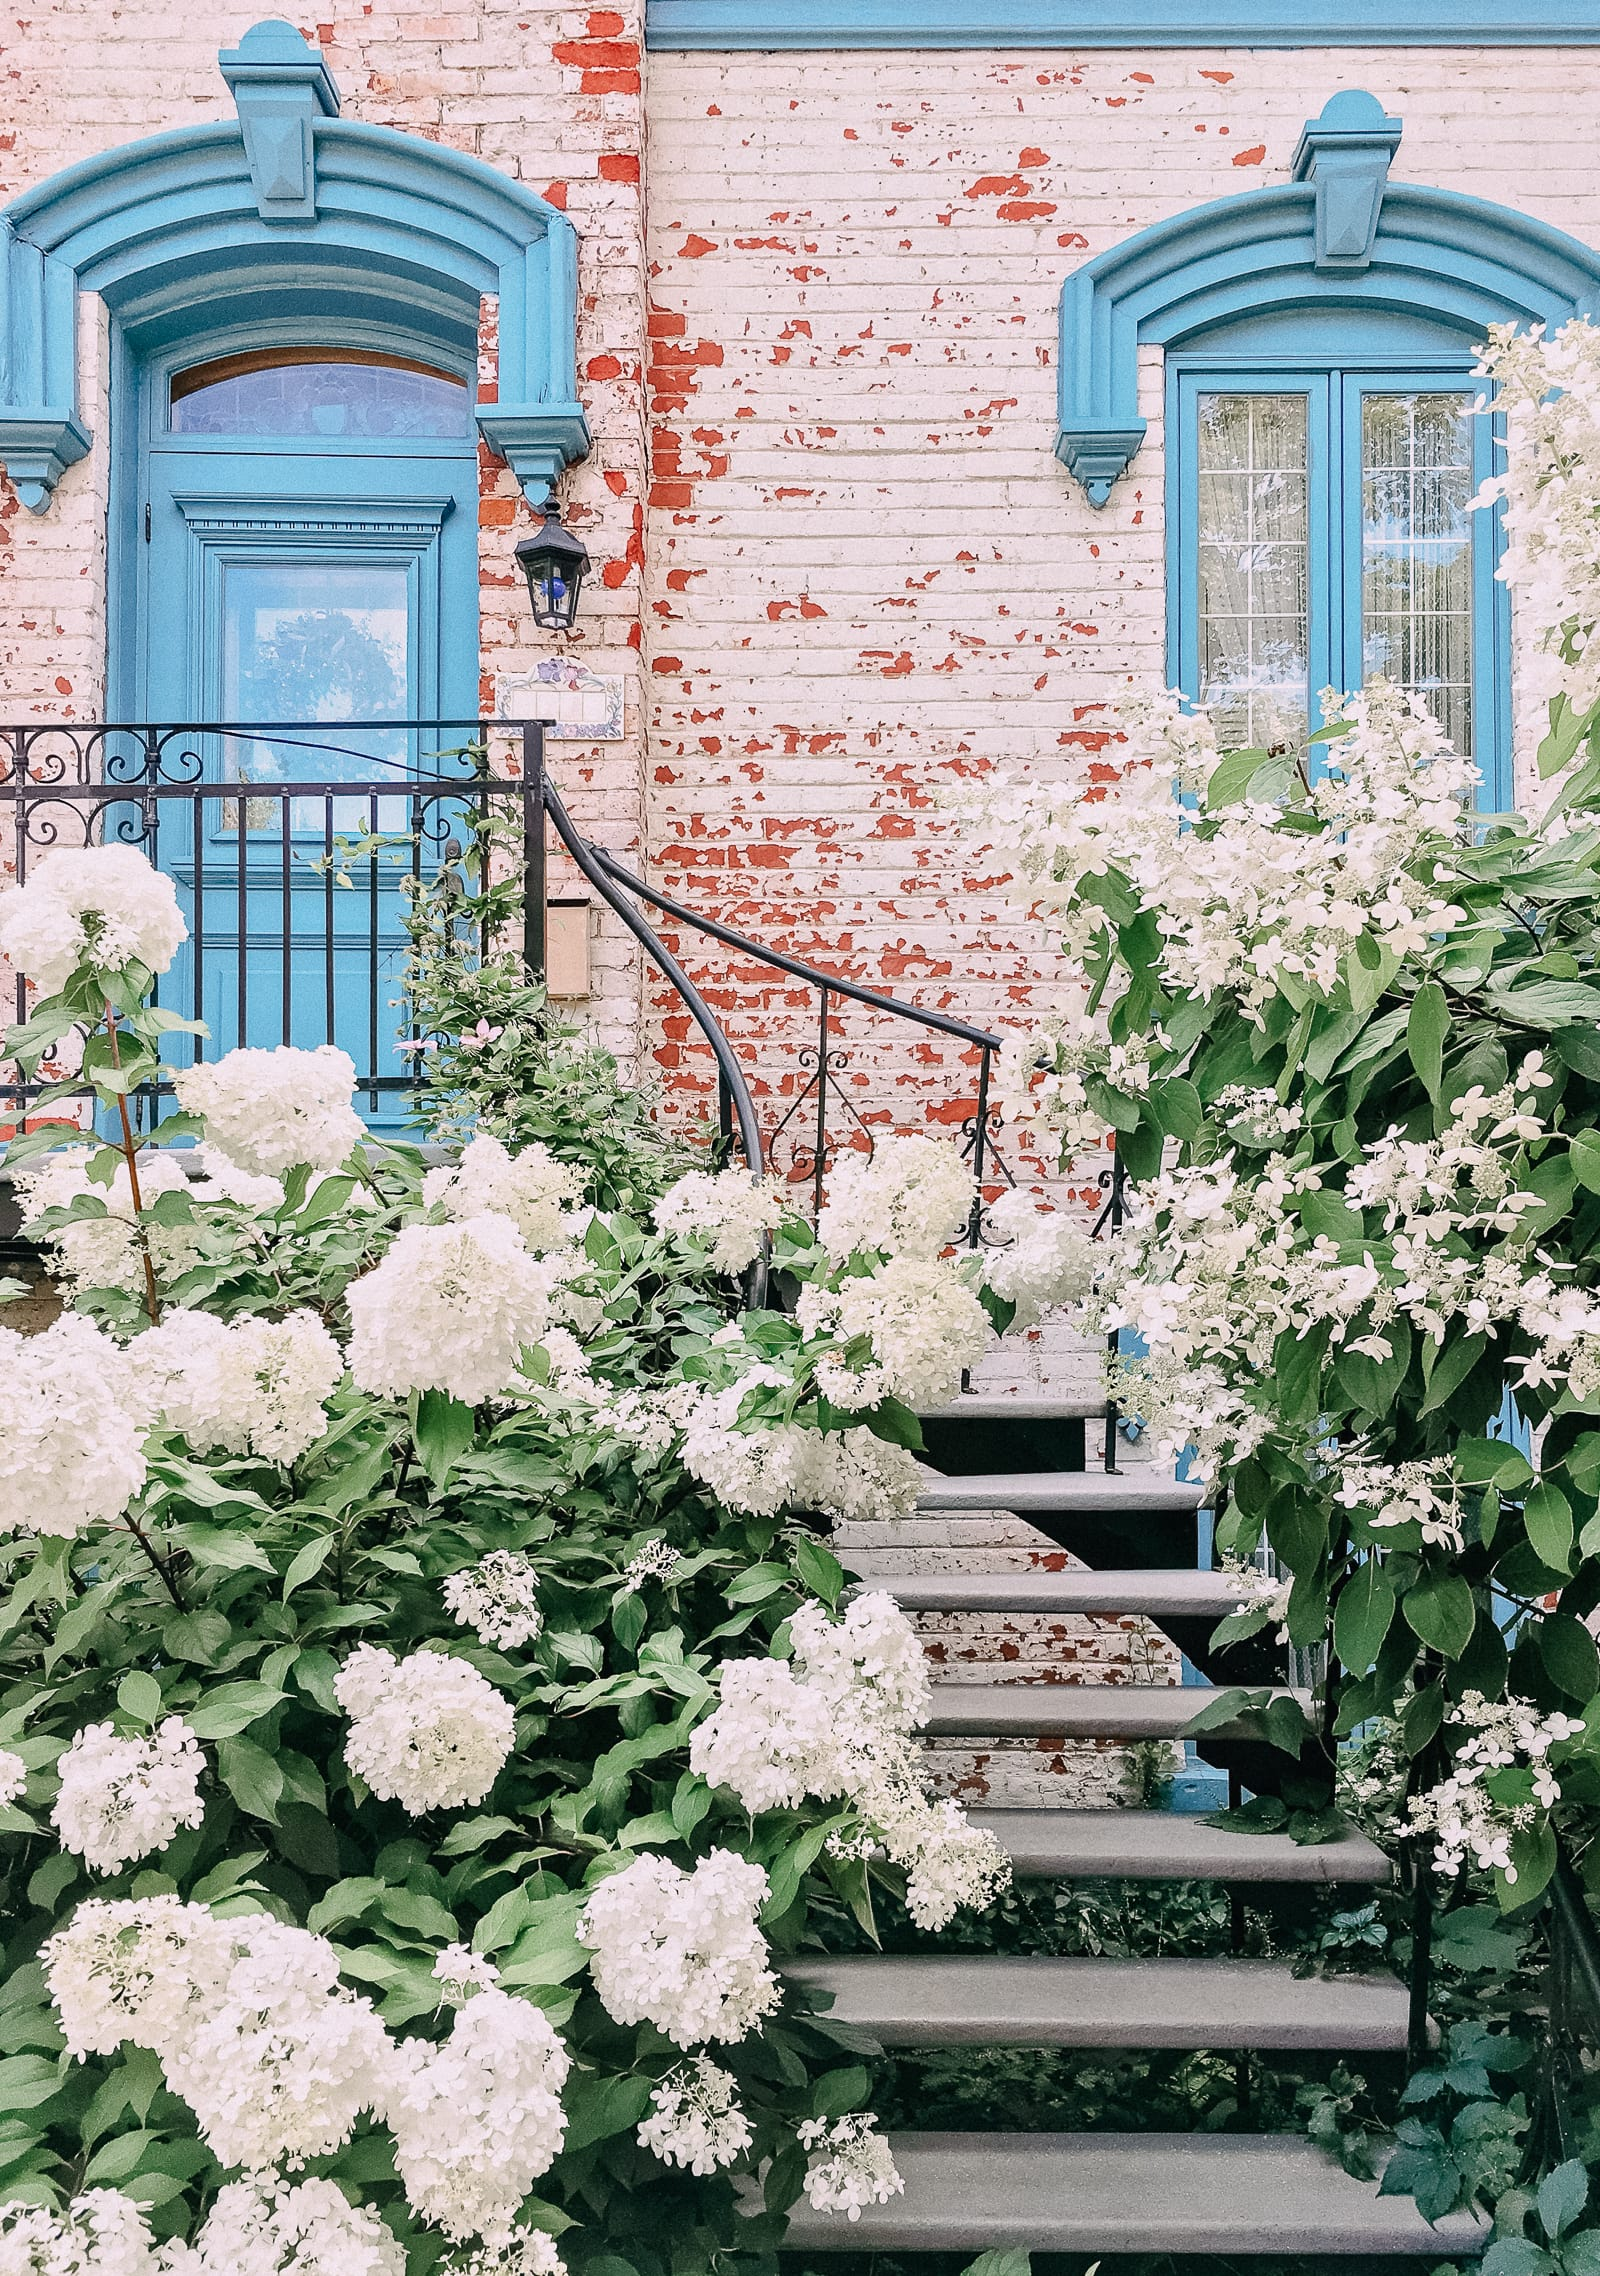 10 Best Things To Do In Montreal - Canada (8)